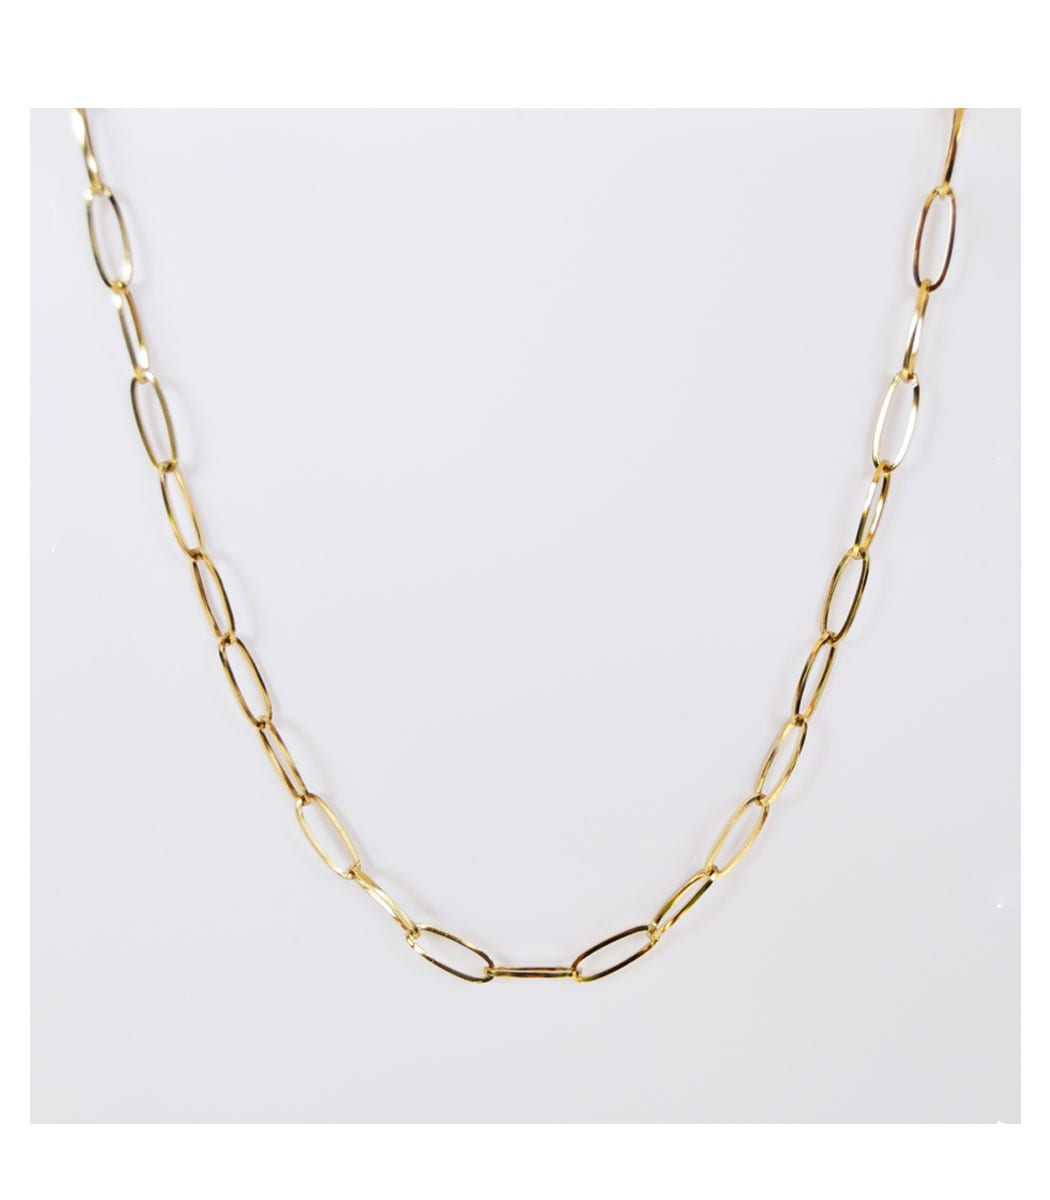 Basic oval link chain necklace